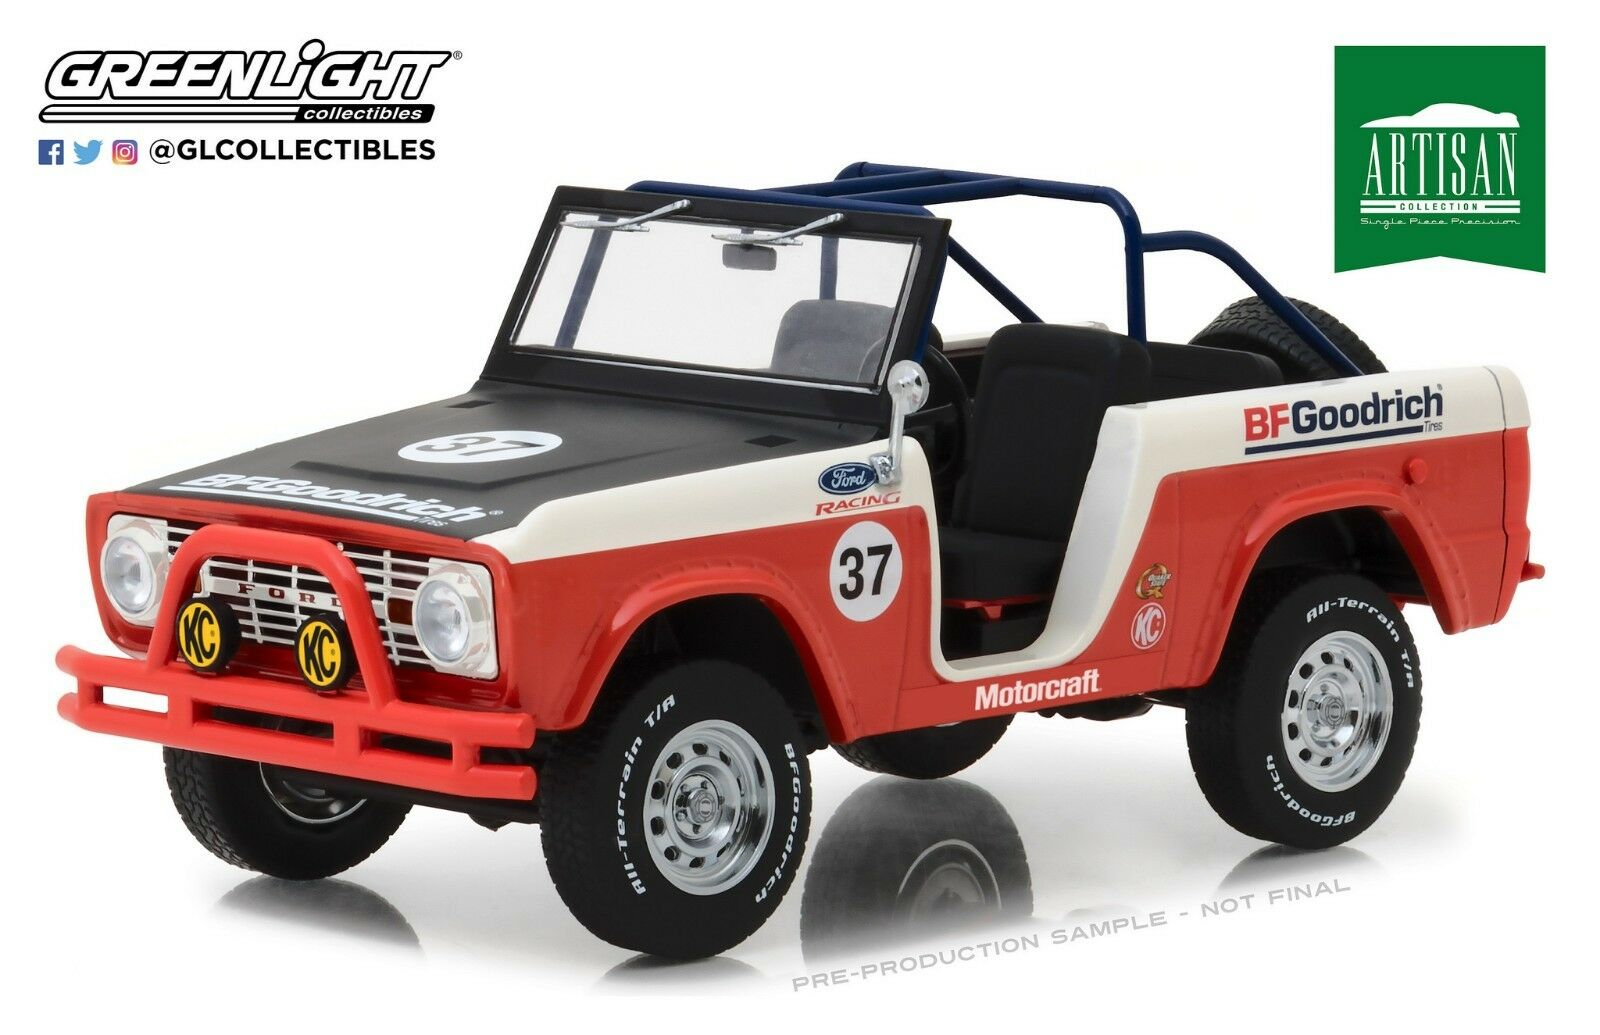 verdelight 1 18 Artisan Collection Collection Collection - 1966 Ford Bronco  37 Bfgoodrich 19037 Baja 0787fc